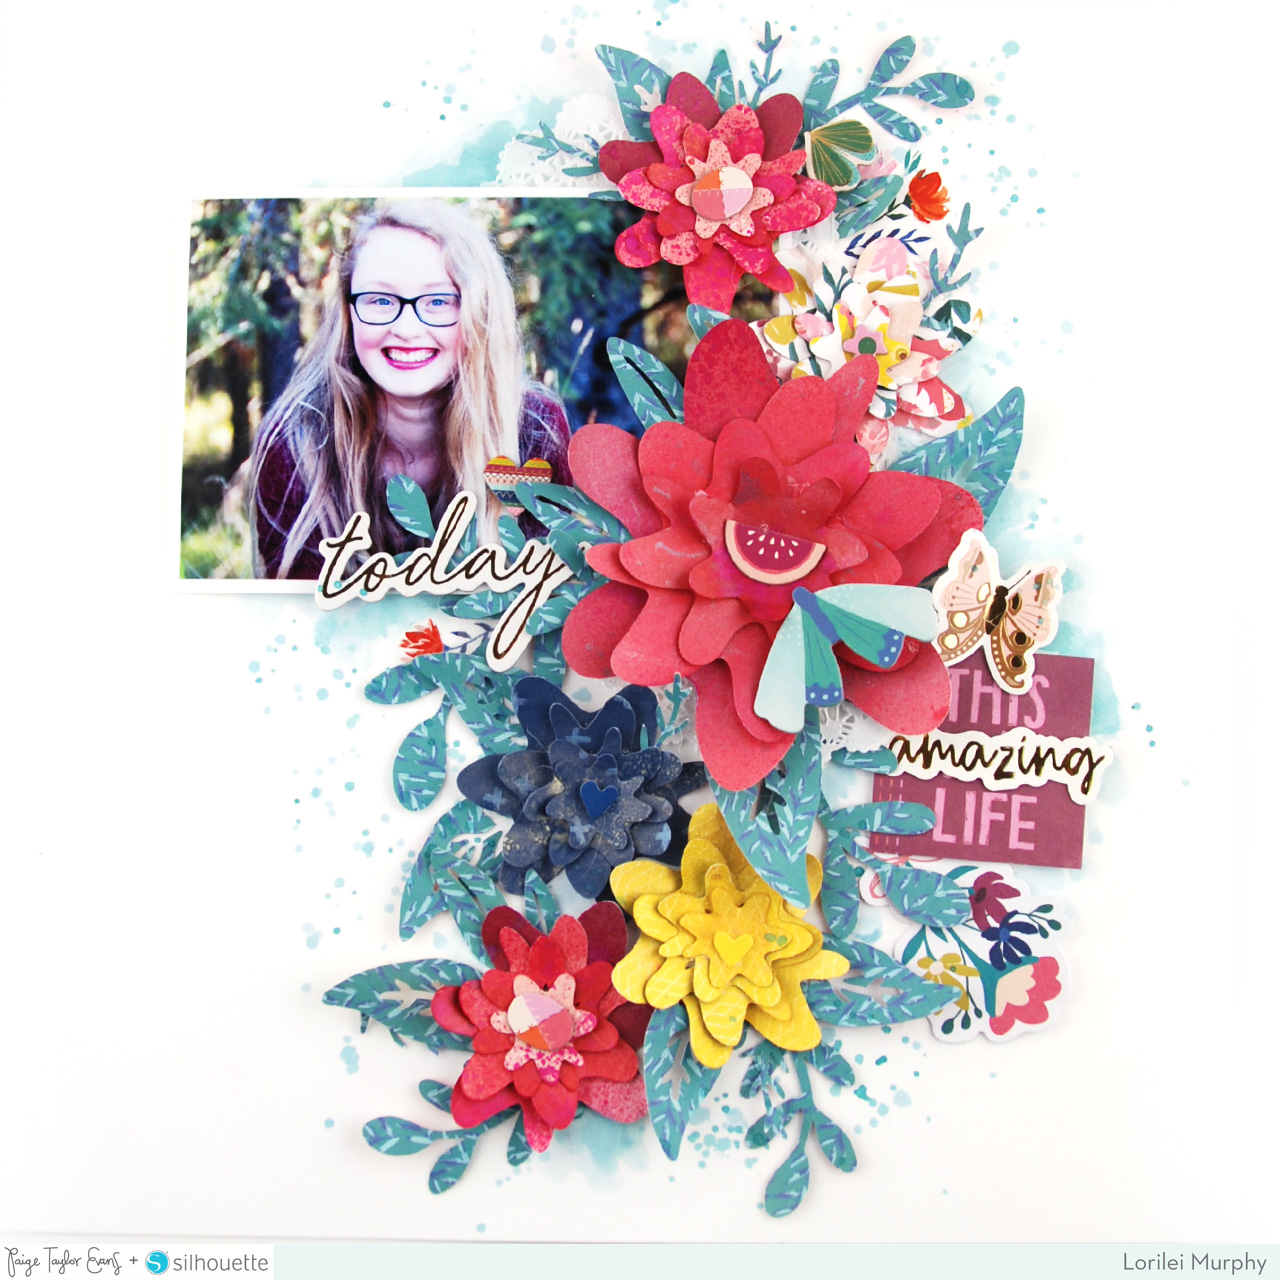 This Life Flower Layout – Paige Evans + Silhouette